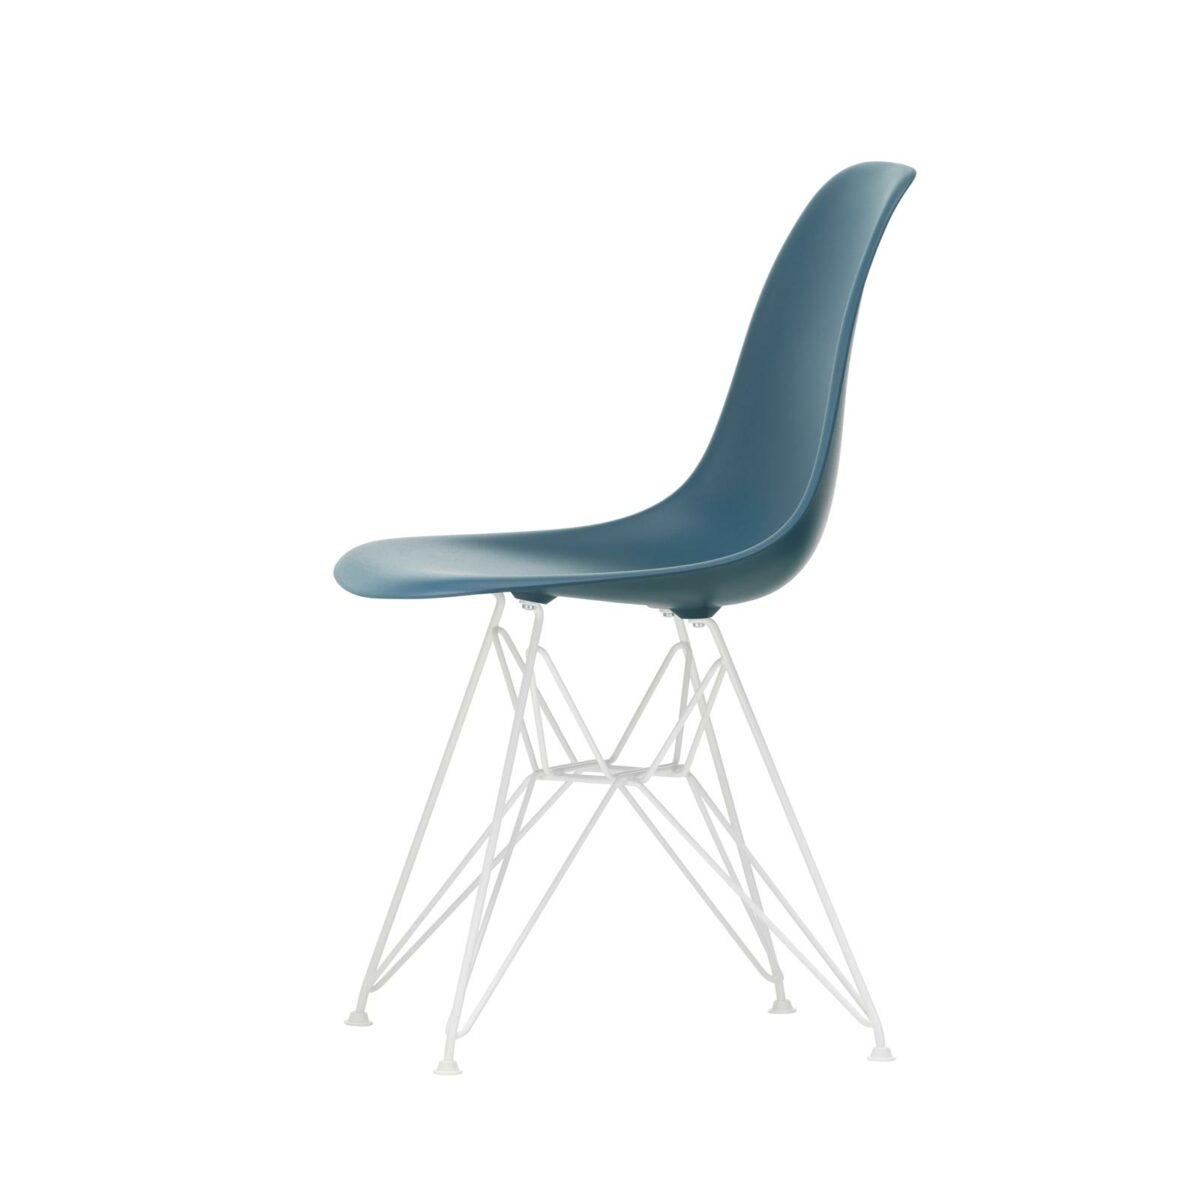 3034984 Eames Plastic Side Chair DSR 83 sea blue 04 white powder coated left master